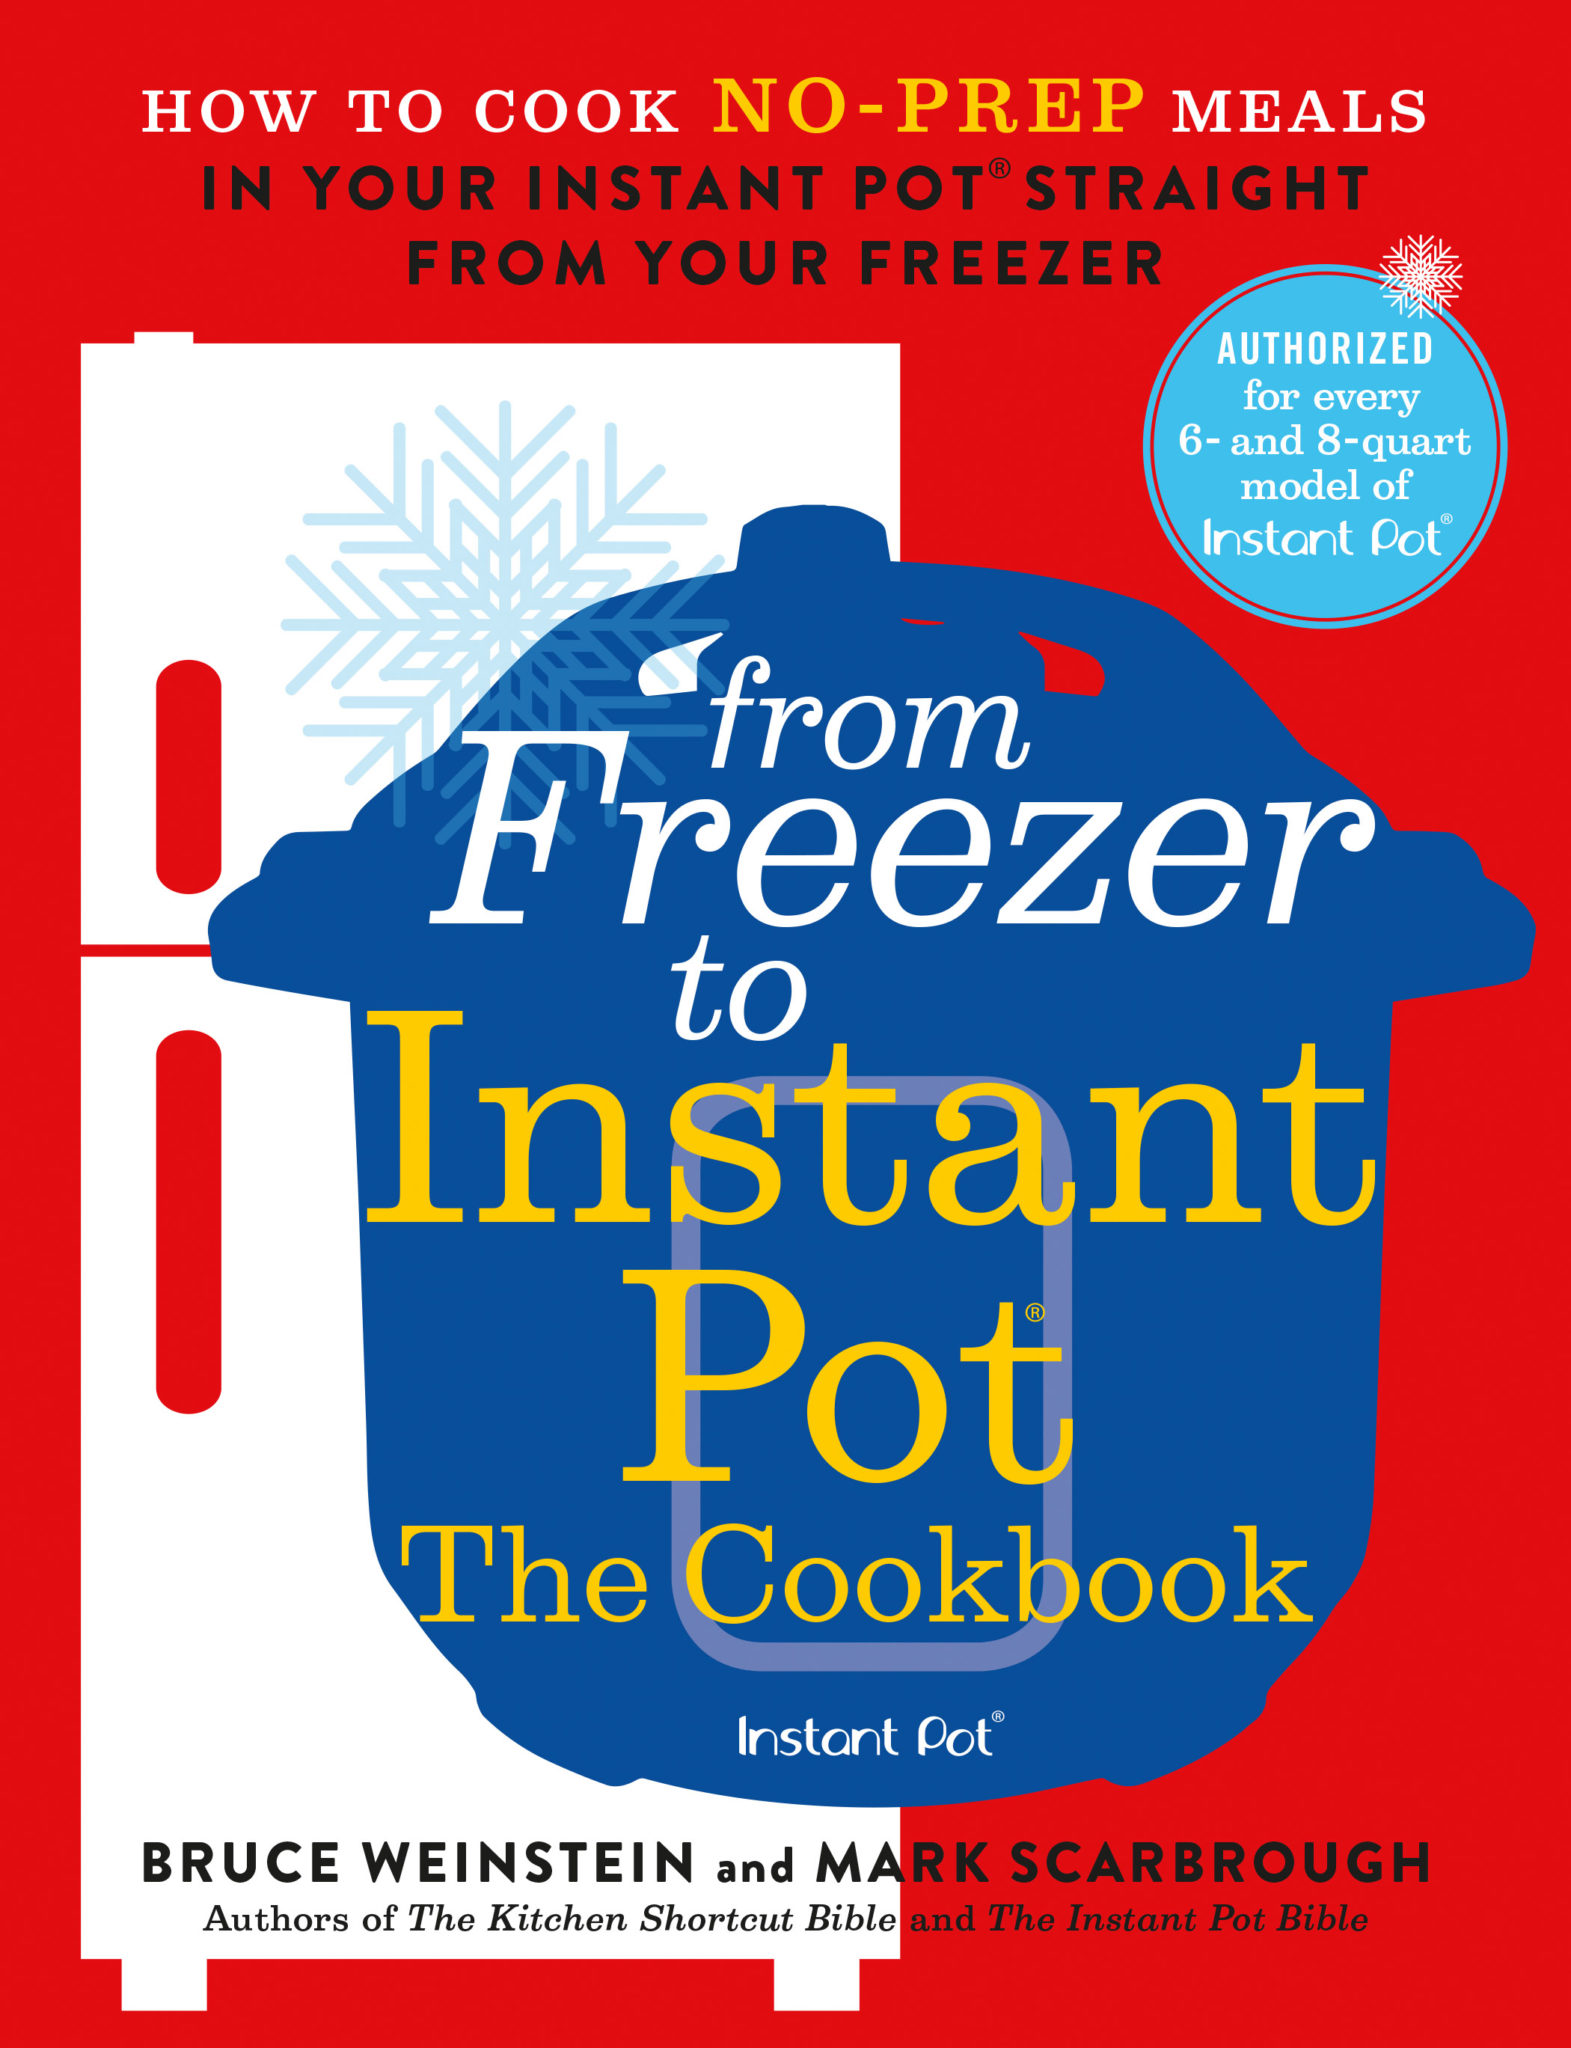 From Freezer to Instant Pot Cookbook by Bruce Weinstein and Mark Scarbrough